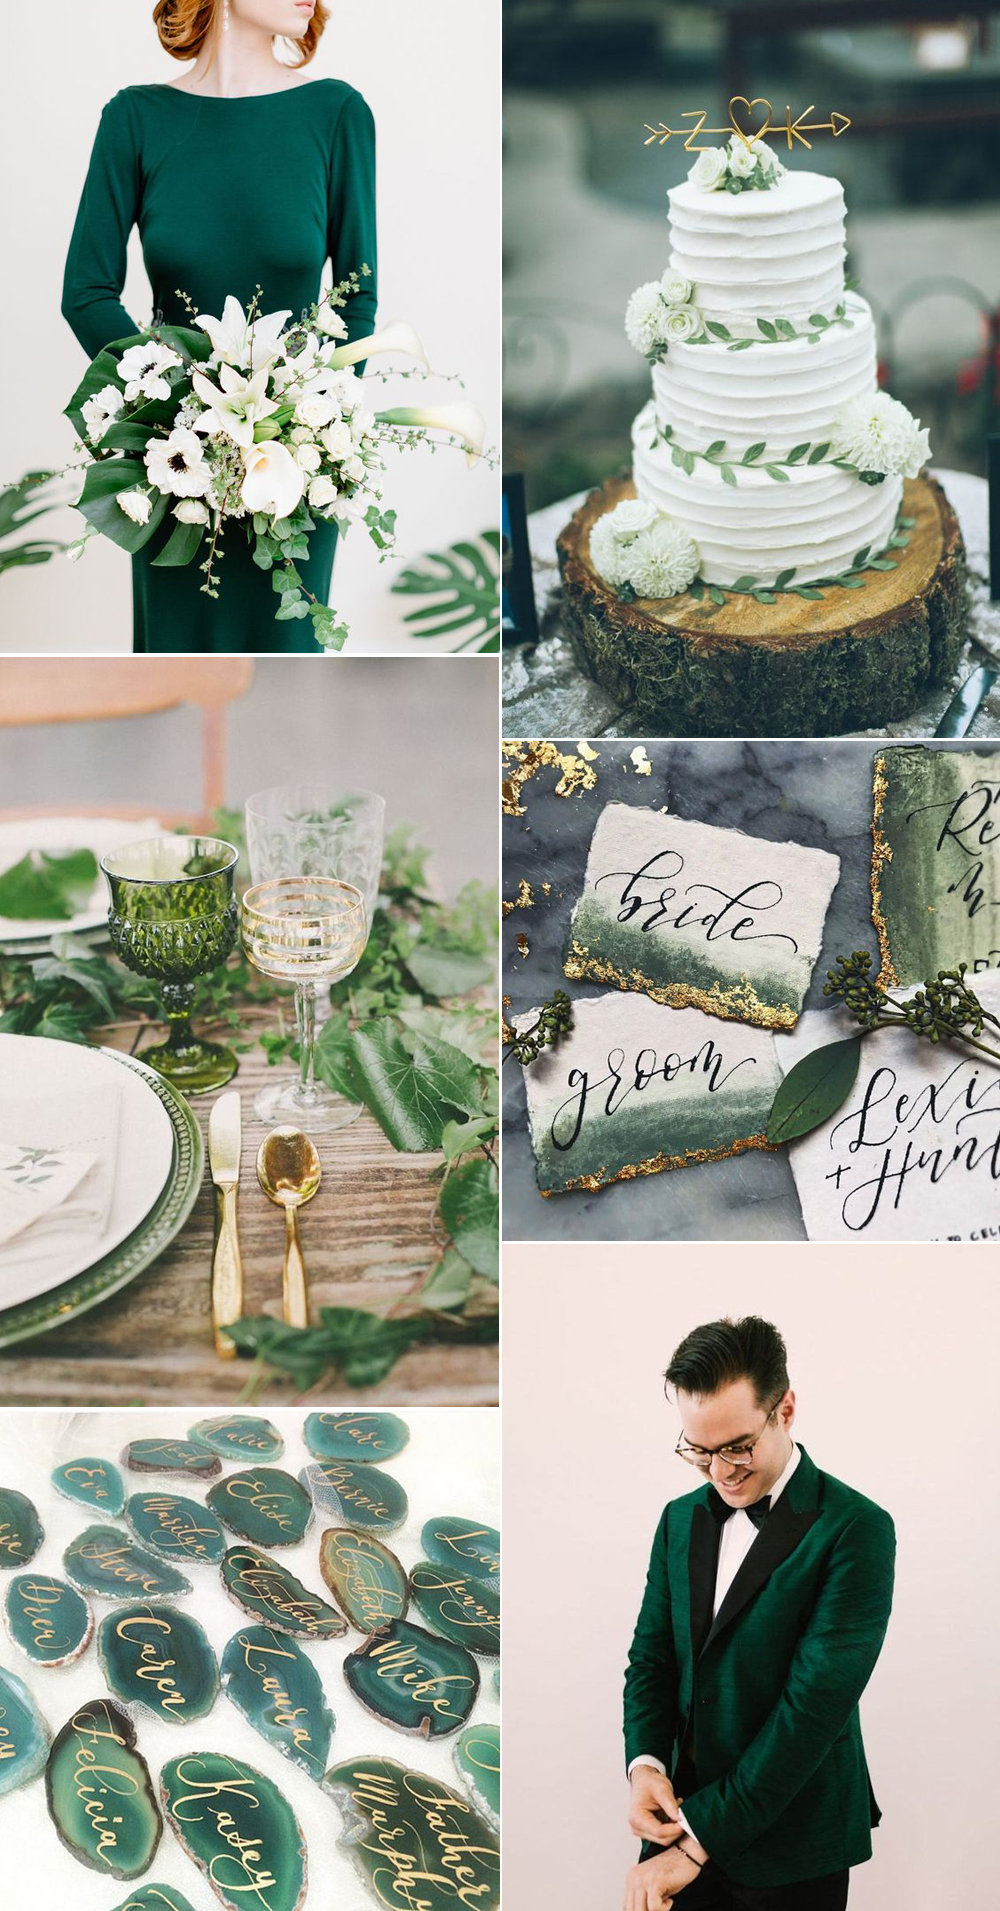 {Image Sources: Bride with green dress and bouquet featured on  Green Wedding Shoes  - photo by  Mike Cassimatis ; Wedding cake with greenery featured on  Junebug Weddings  - photo by  From The Daisies ; Green table top setting featured on  Casa and Fest a; Green and Gold wedding signs featured on  Instagram ; Geode seating chart featured on  Brit + Co ; Green tux featured on  Kancyl }